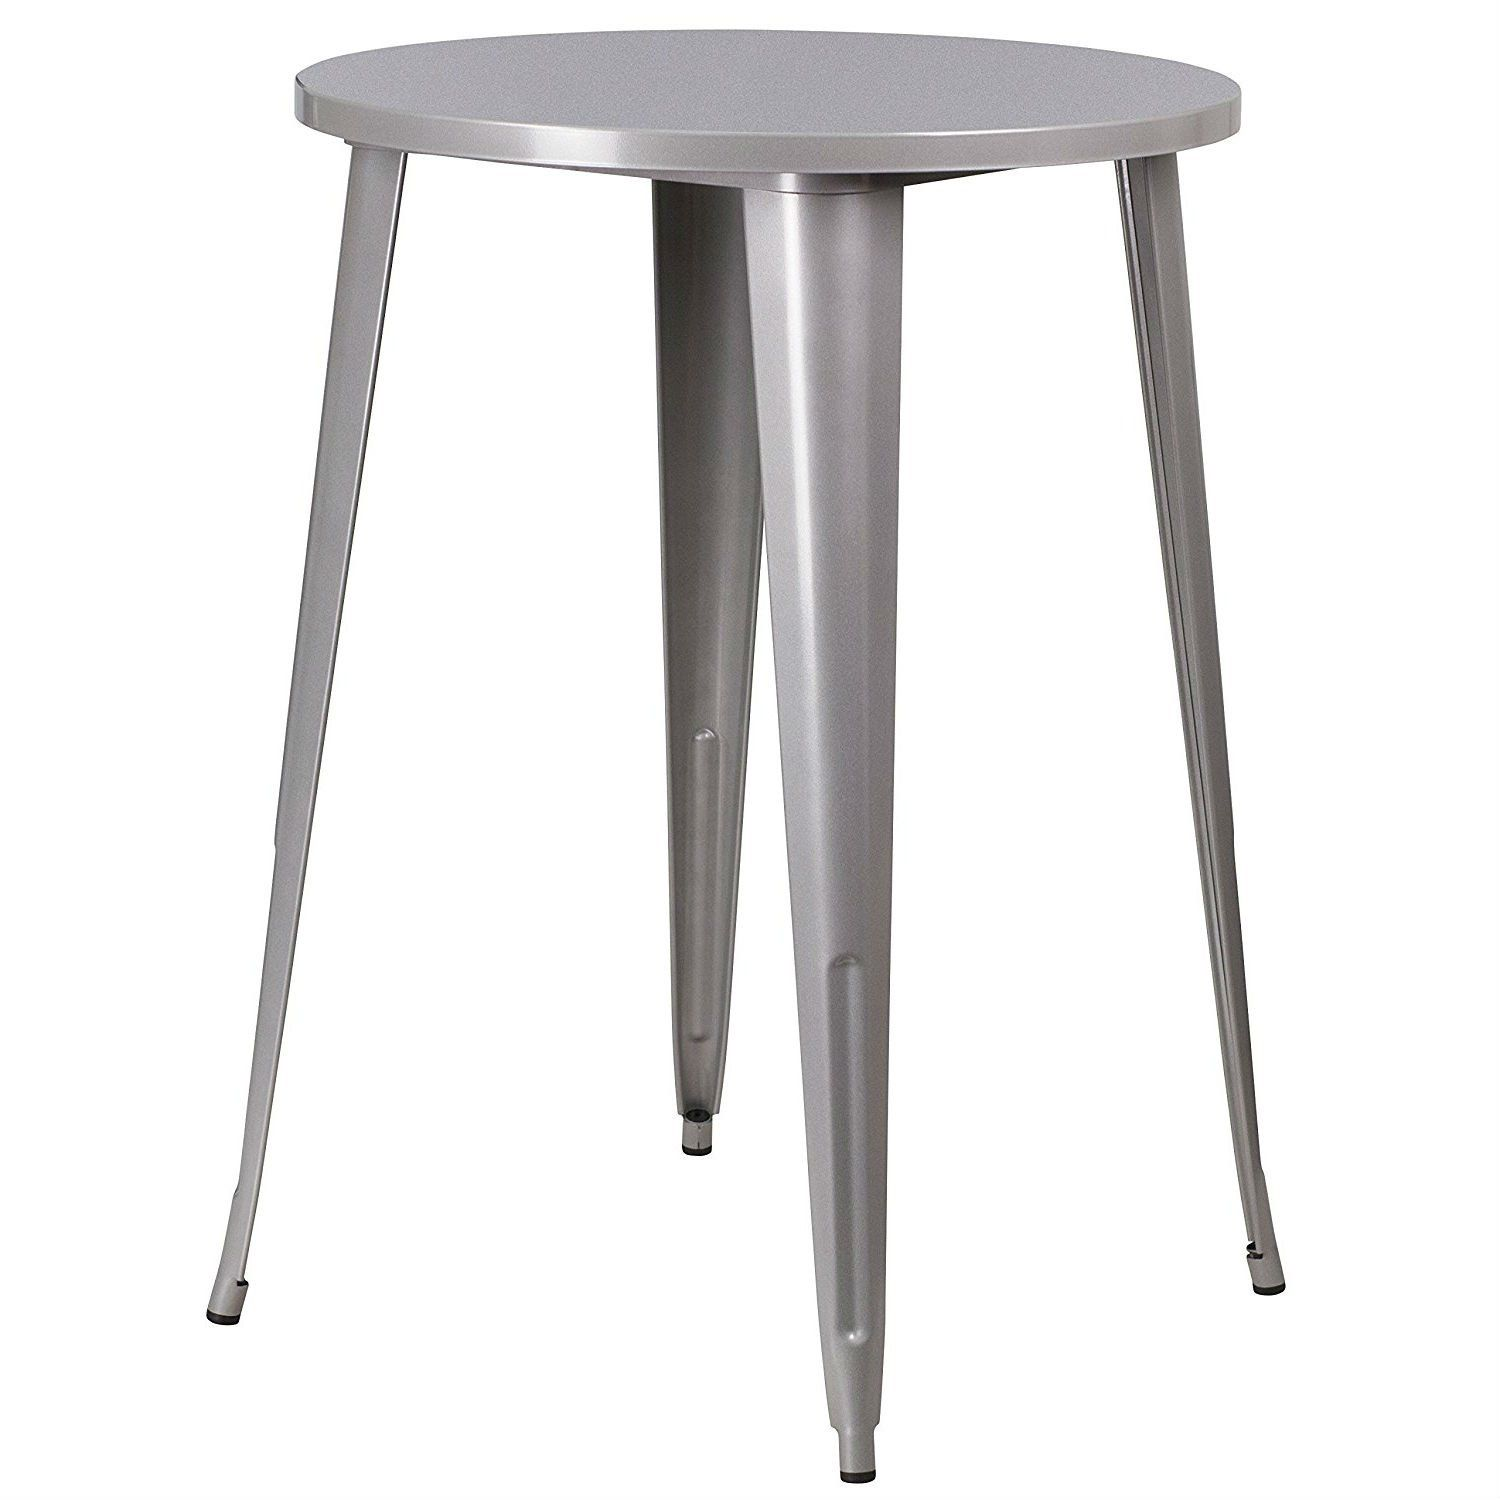 Astounding Outdoor 30 Inch Round Metal Cafe Bar Patio Table In Silver Theyellowbook Wood Chair Design Ideas Theyellowbookinfo